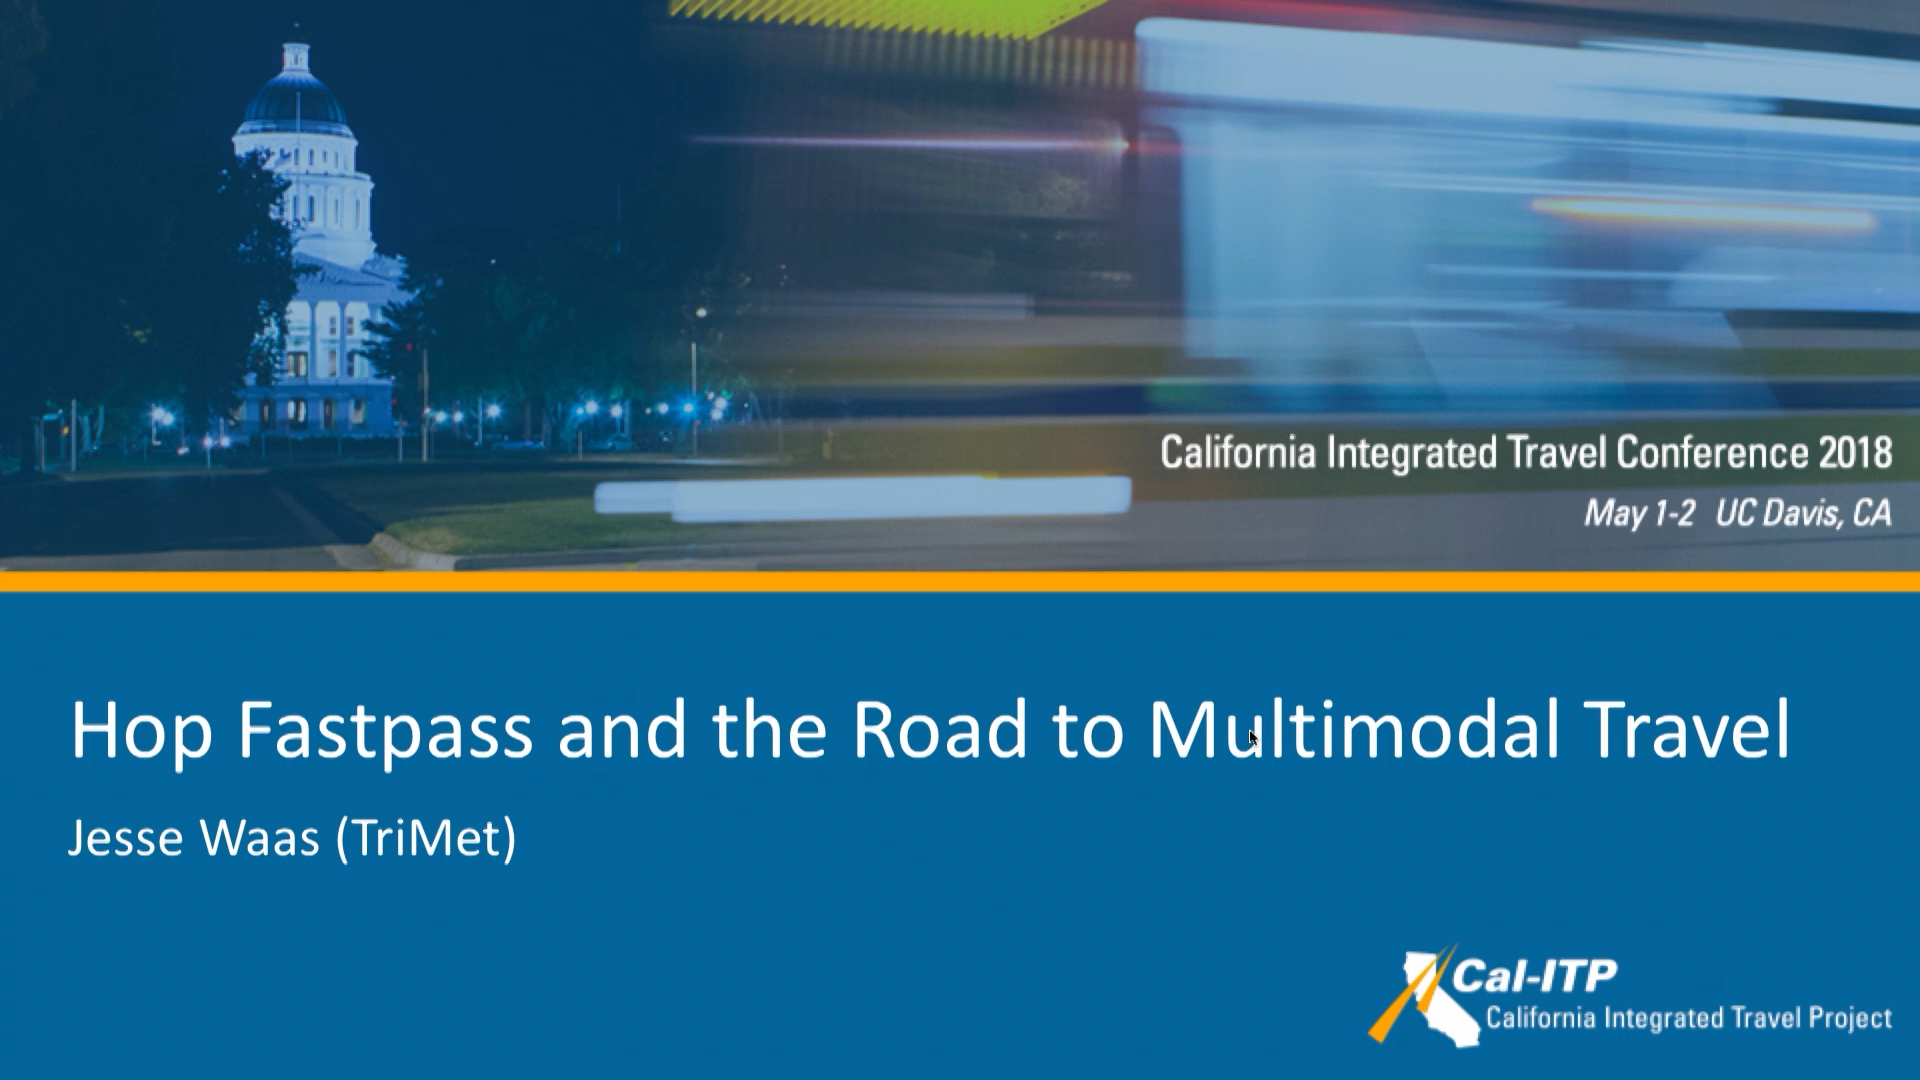 22. Hop Fastpass & the Road to Multimodal Travel